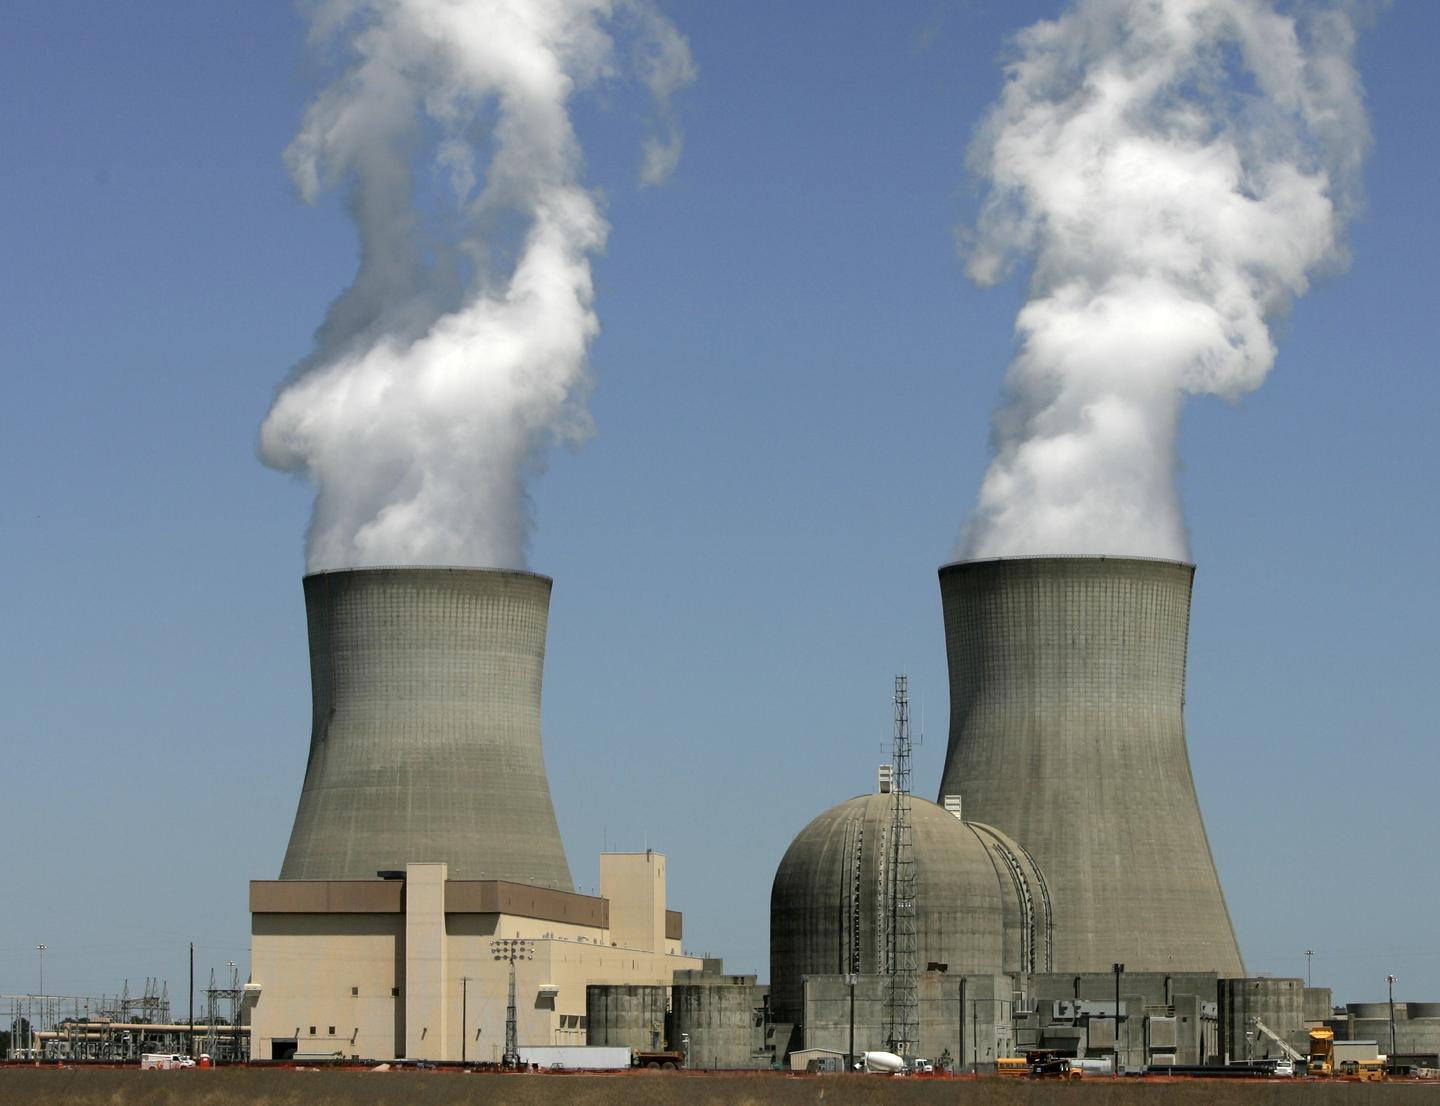 a study on nuclear energy The study finds that a diverse portfolio of clean energy technologies, including nuclear, is a more feasible pathway to a low-emissions energy system the international energy agency (iea) includes nuclear with other sources of low-emissions energy in its technology roadmap.